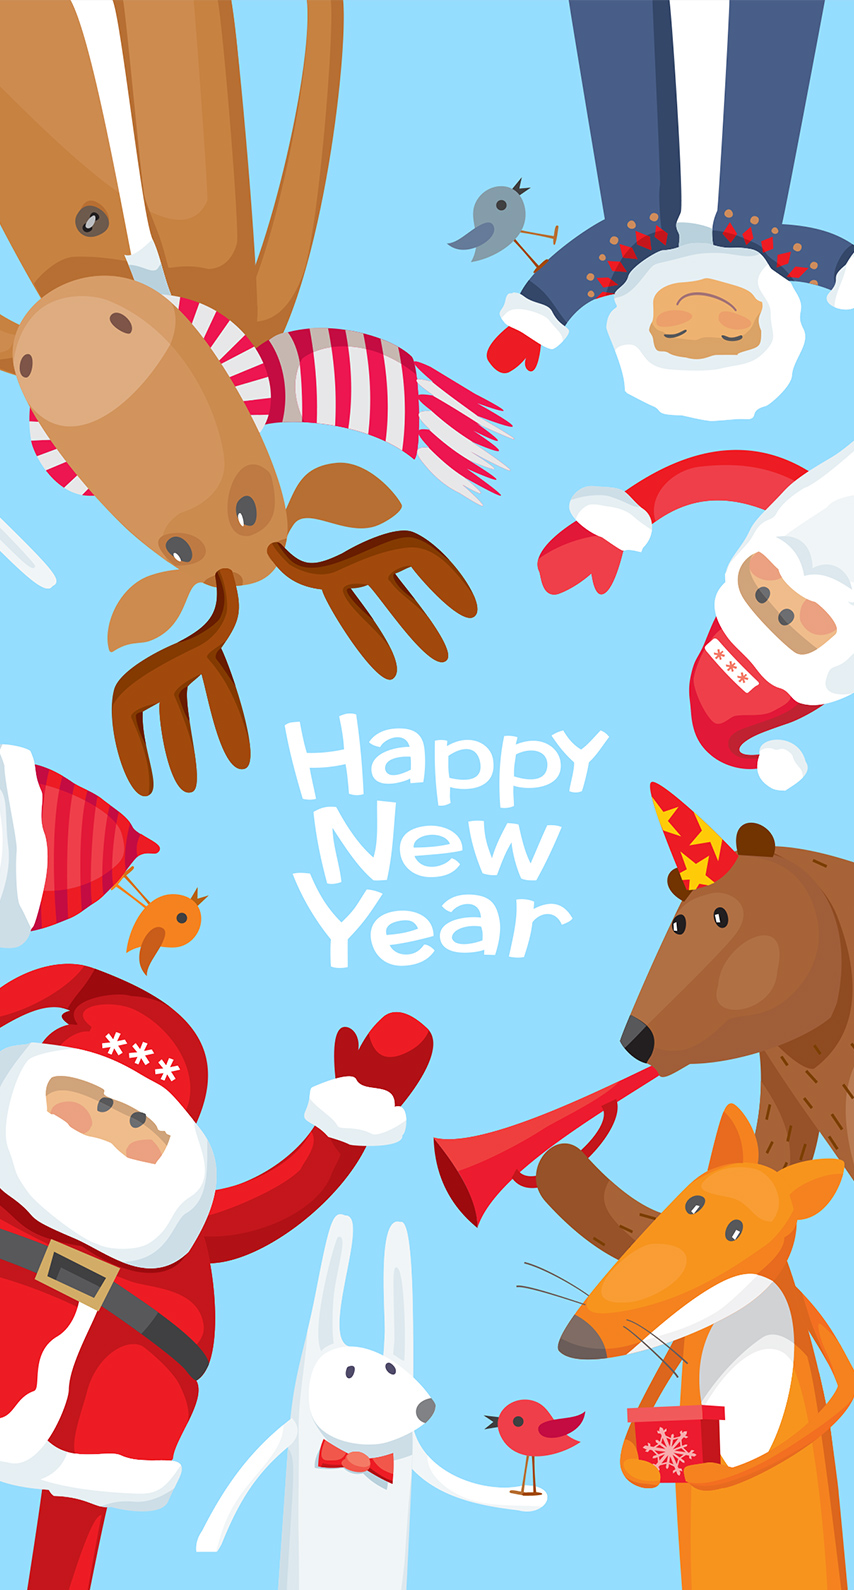 font, graphics, Christmas, clip art, fictional character, scarf, area, santa claus, vertebrate, rabits and hares